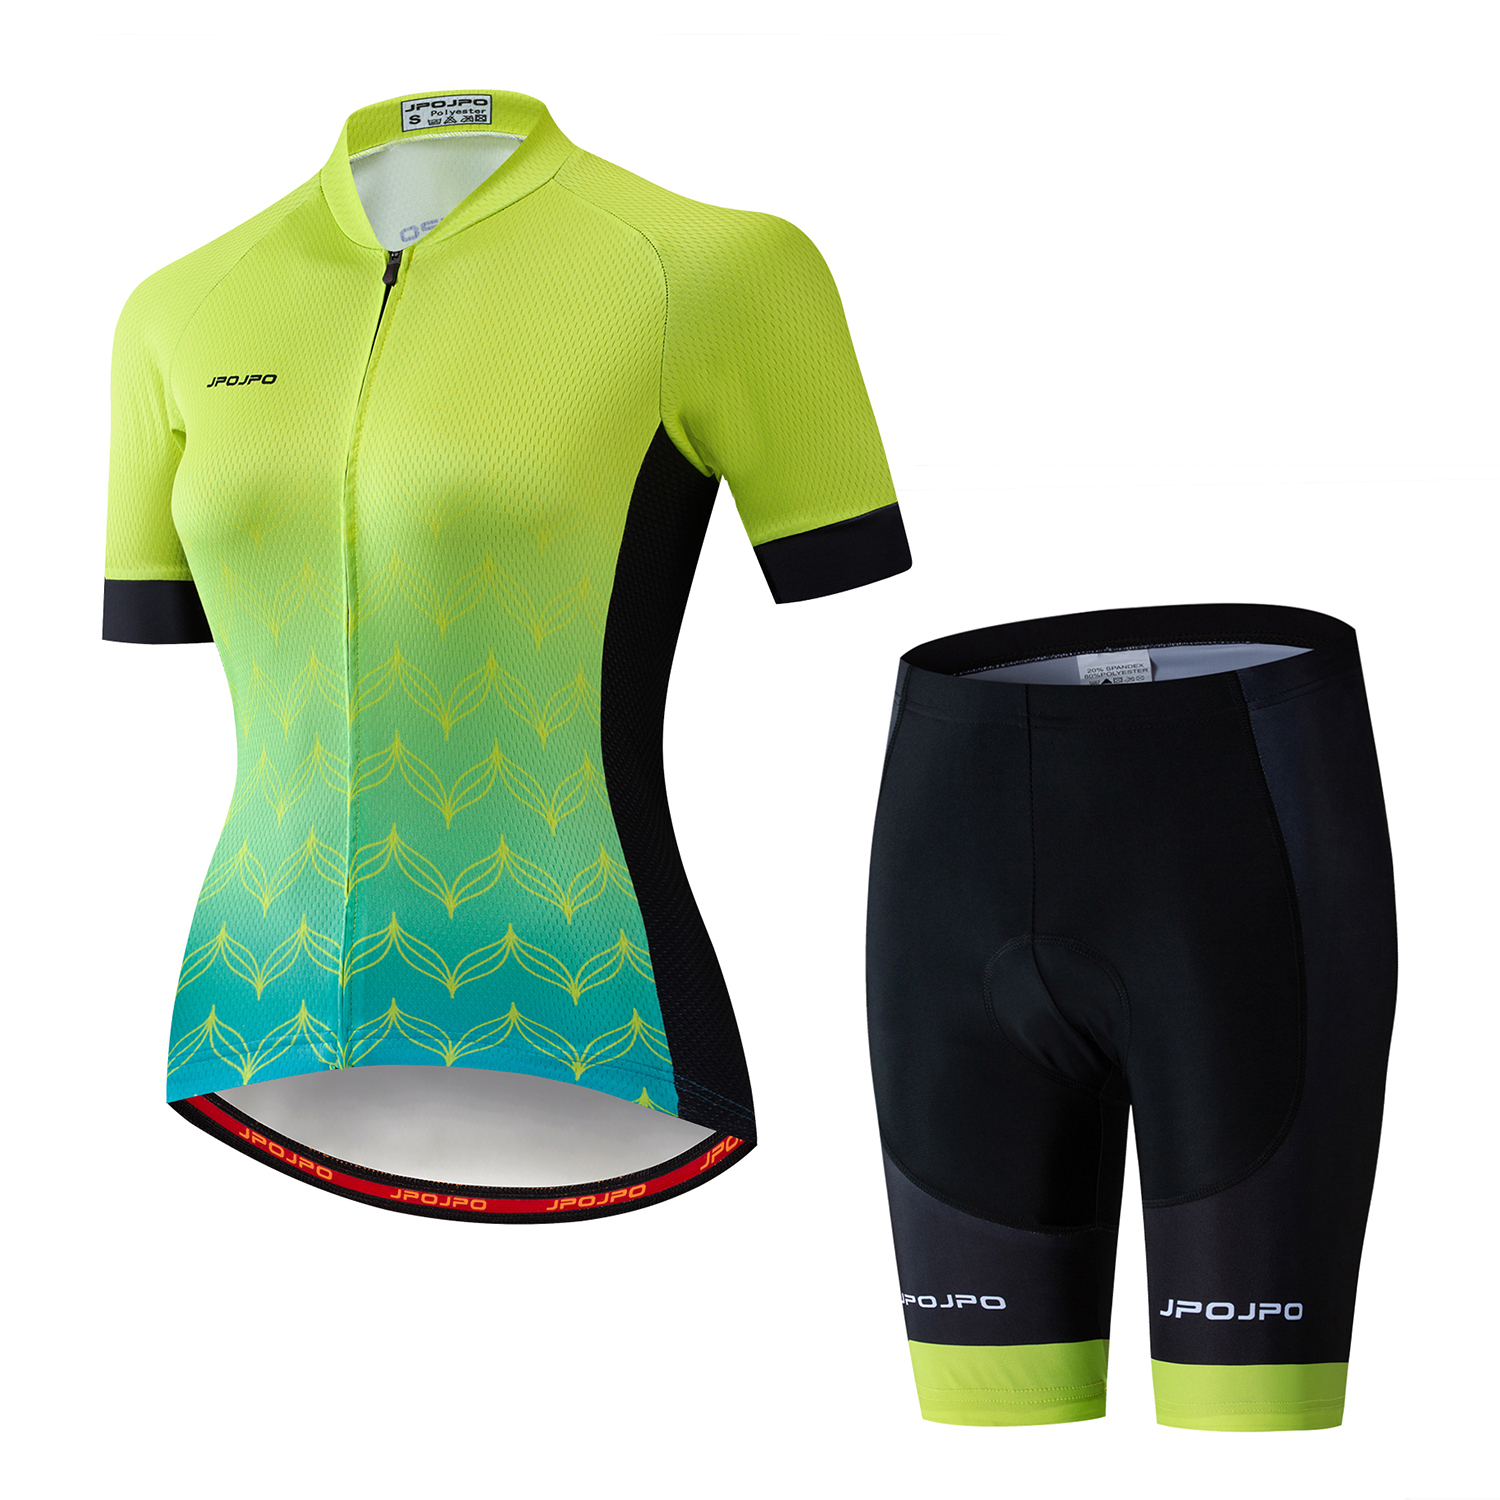 2019 MTB Bike Jersey bib shorts set Ropa Ciclismo maillot Women Cycling jersey Suit bicycle Top shirts Bottom Female team Green|Cycling Sets| |  - title=